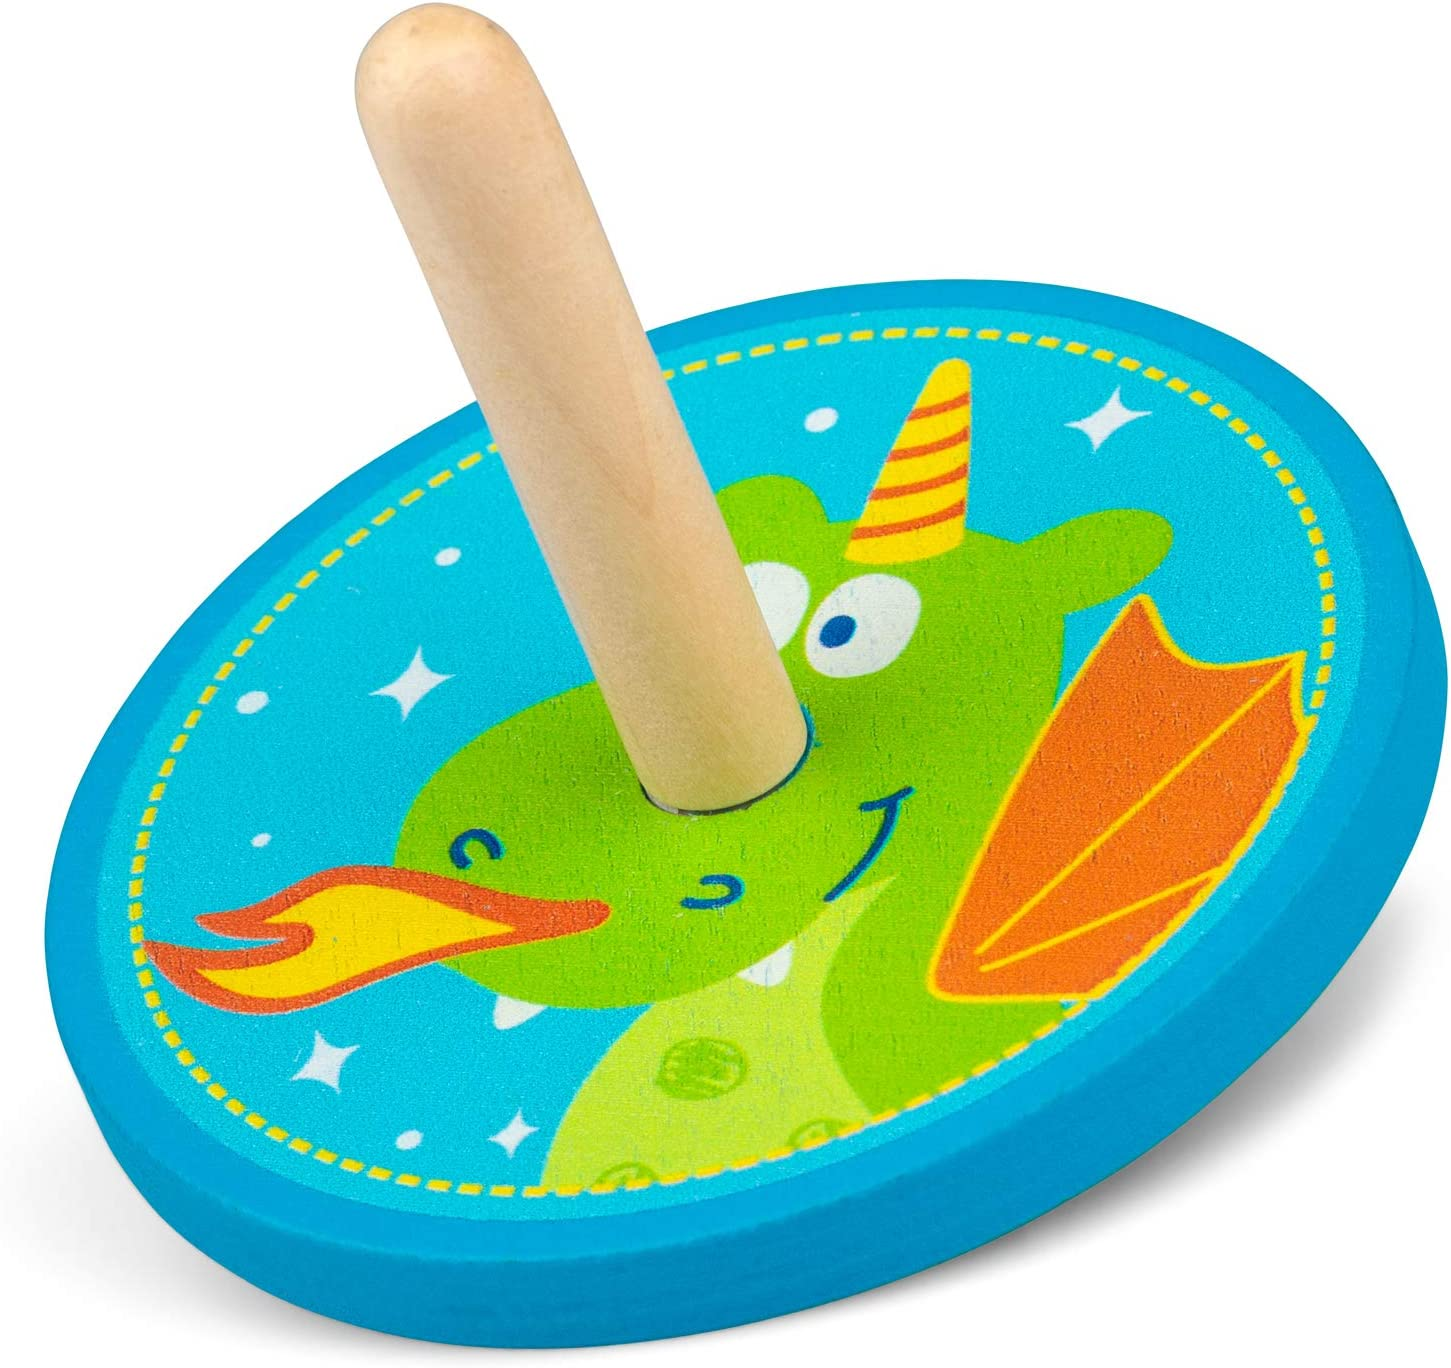 Tobar Wooden Unicorn and Dragon Spinning Top Toy 1 Design Sent at Random